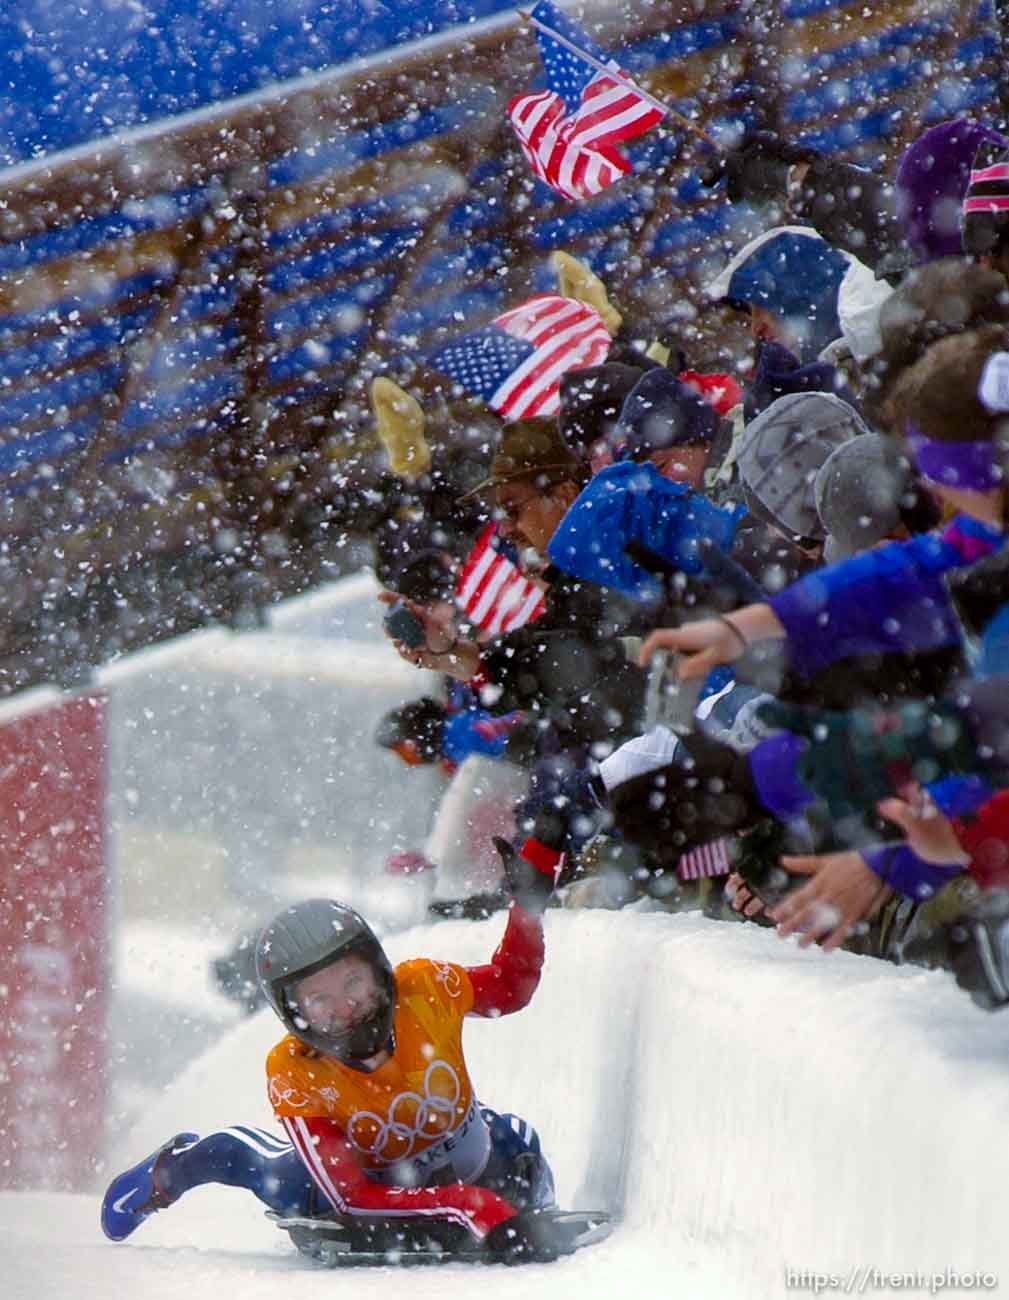 USA gold medalist, Tristan Gale. Skeleton, Wednesday morning at the Utah Olympic Park, 2002 Olympic Winter Games.; 02.20.2002, 11:56:42 AM